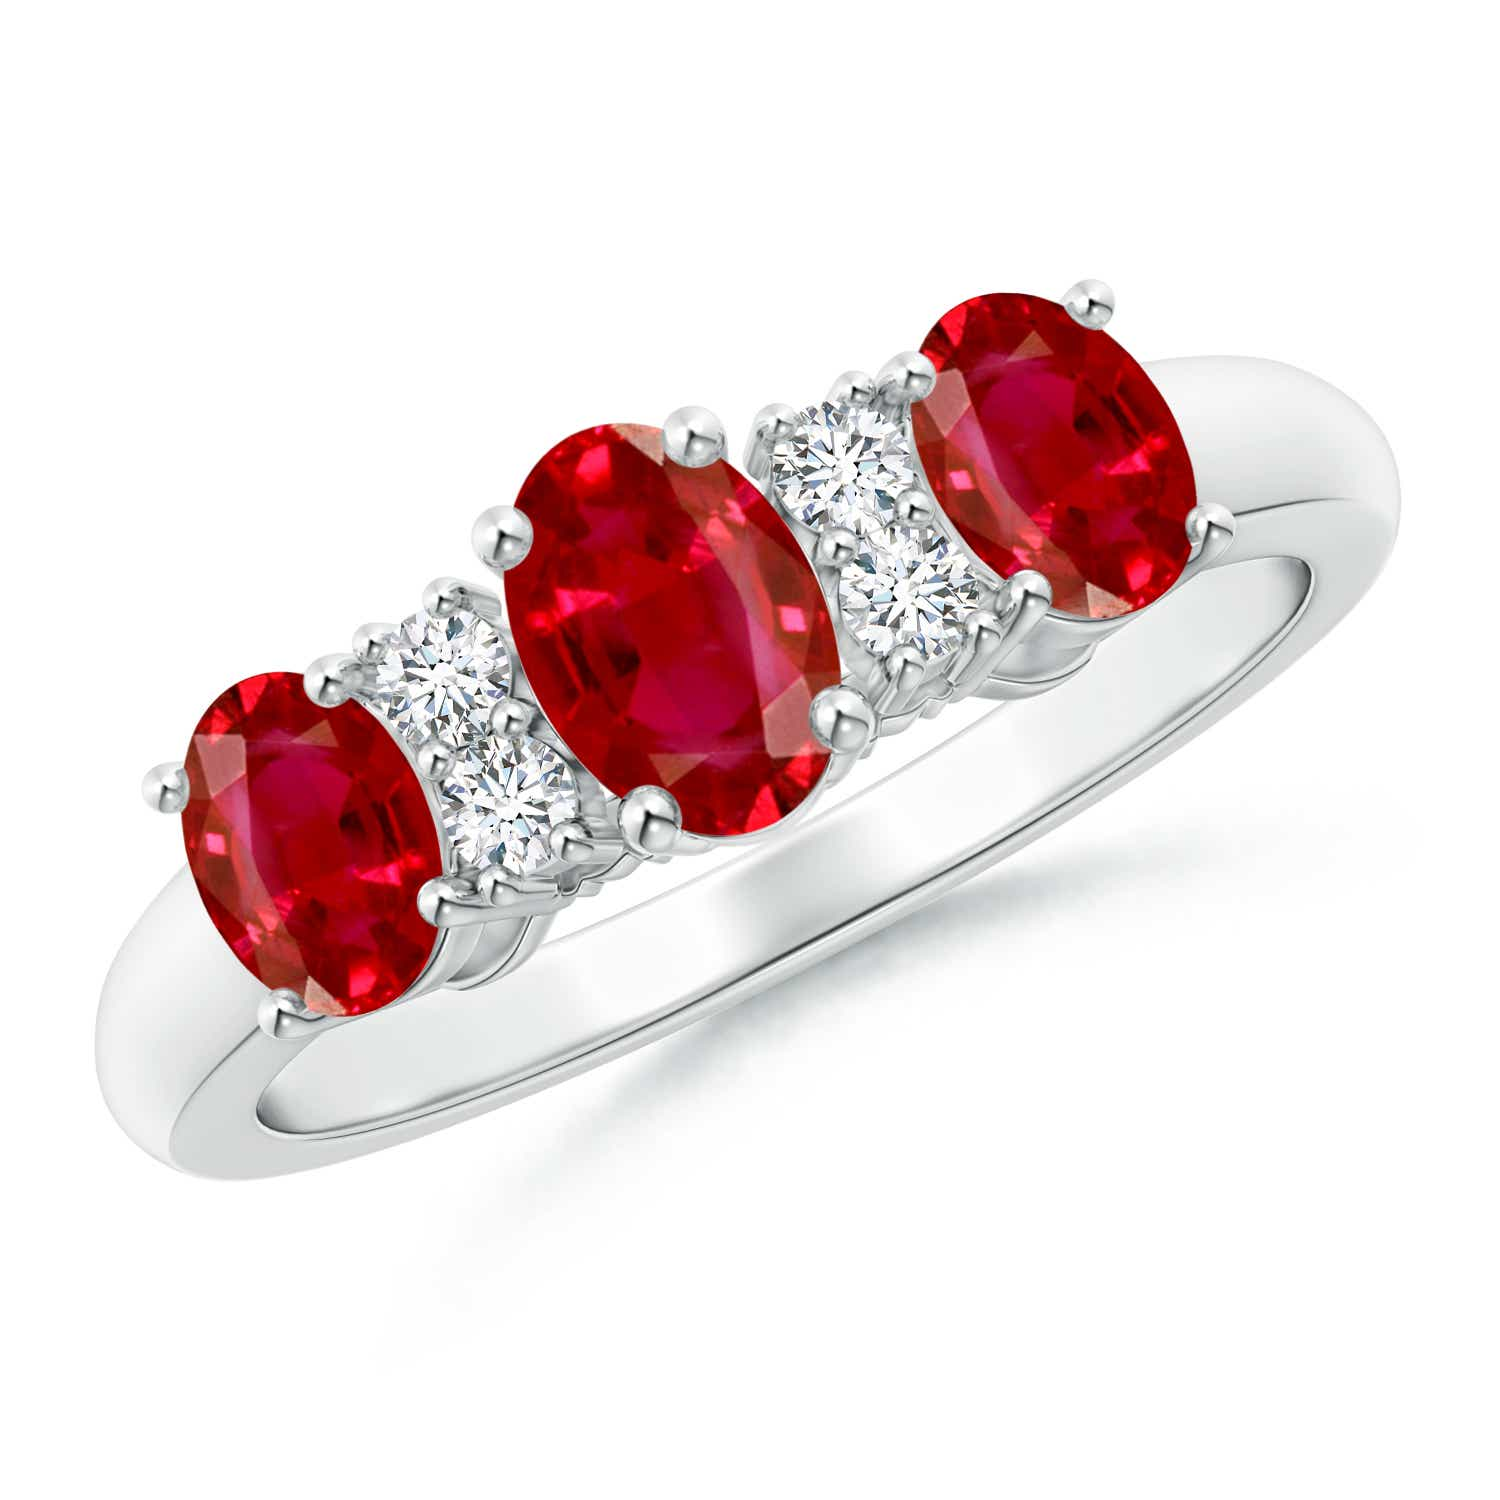 Oval Three Stone Ruby Engagement Ring with Diamonds - Angara.com